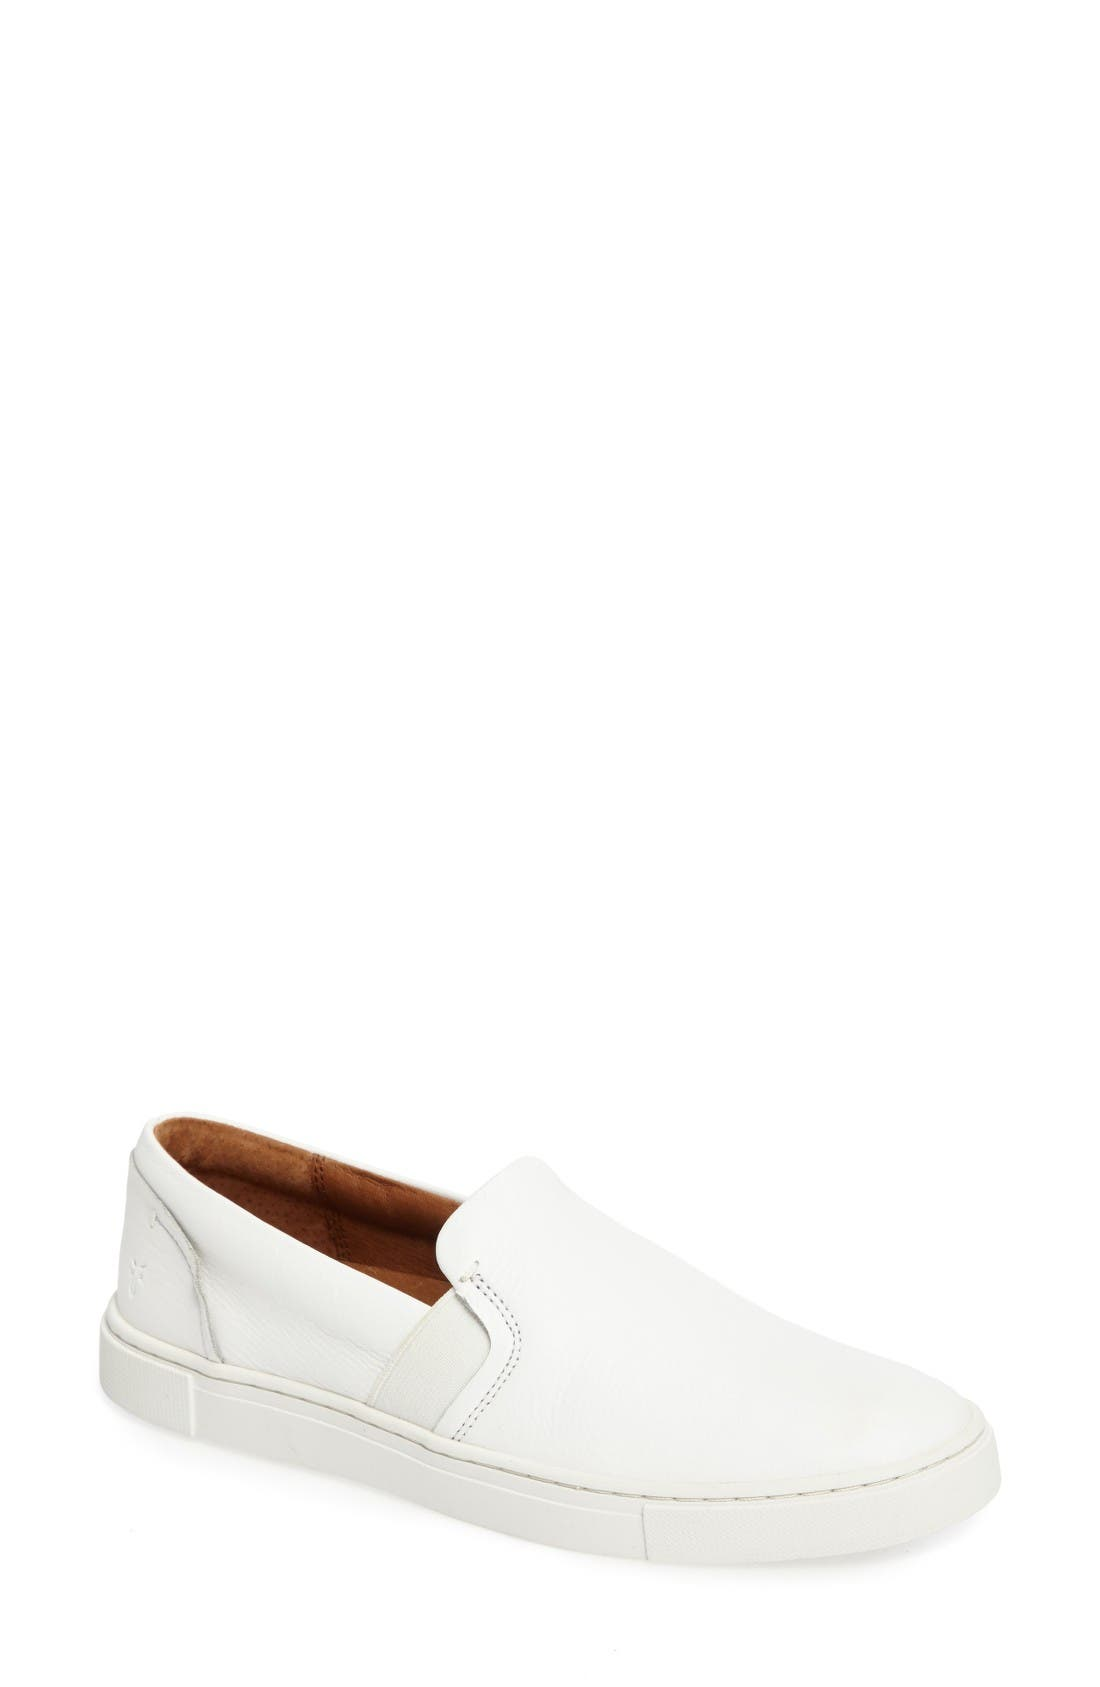 Alternate Image 1 Selected - Frye Ivy Slip-On Sneaker (Women)